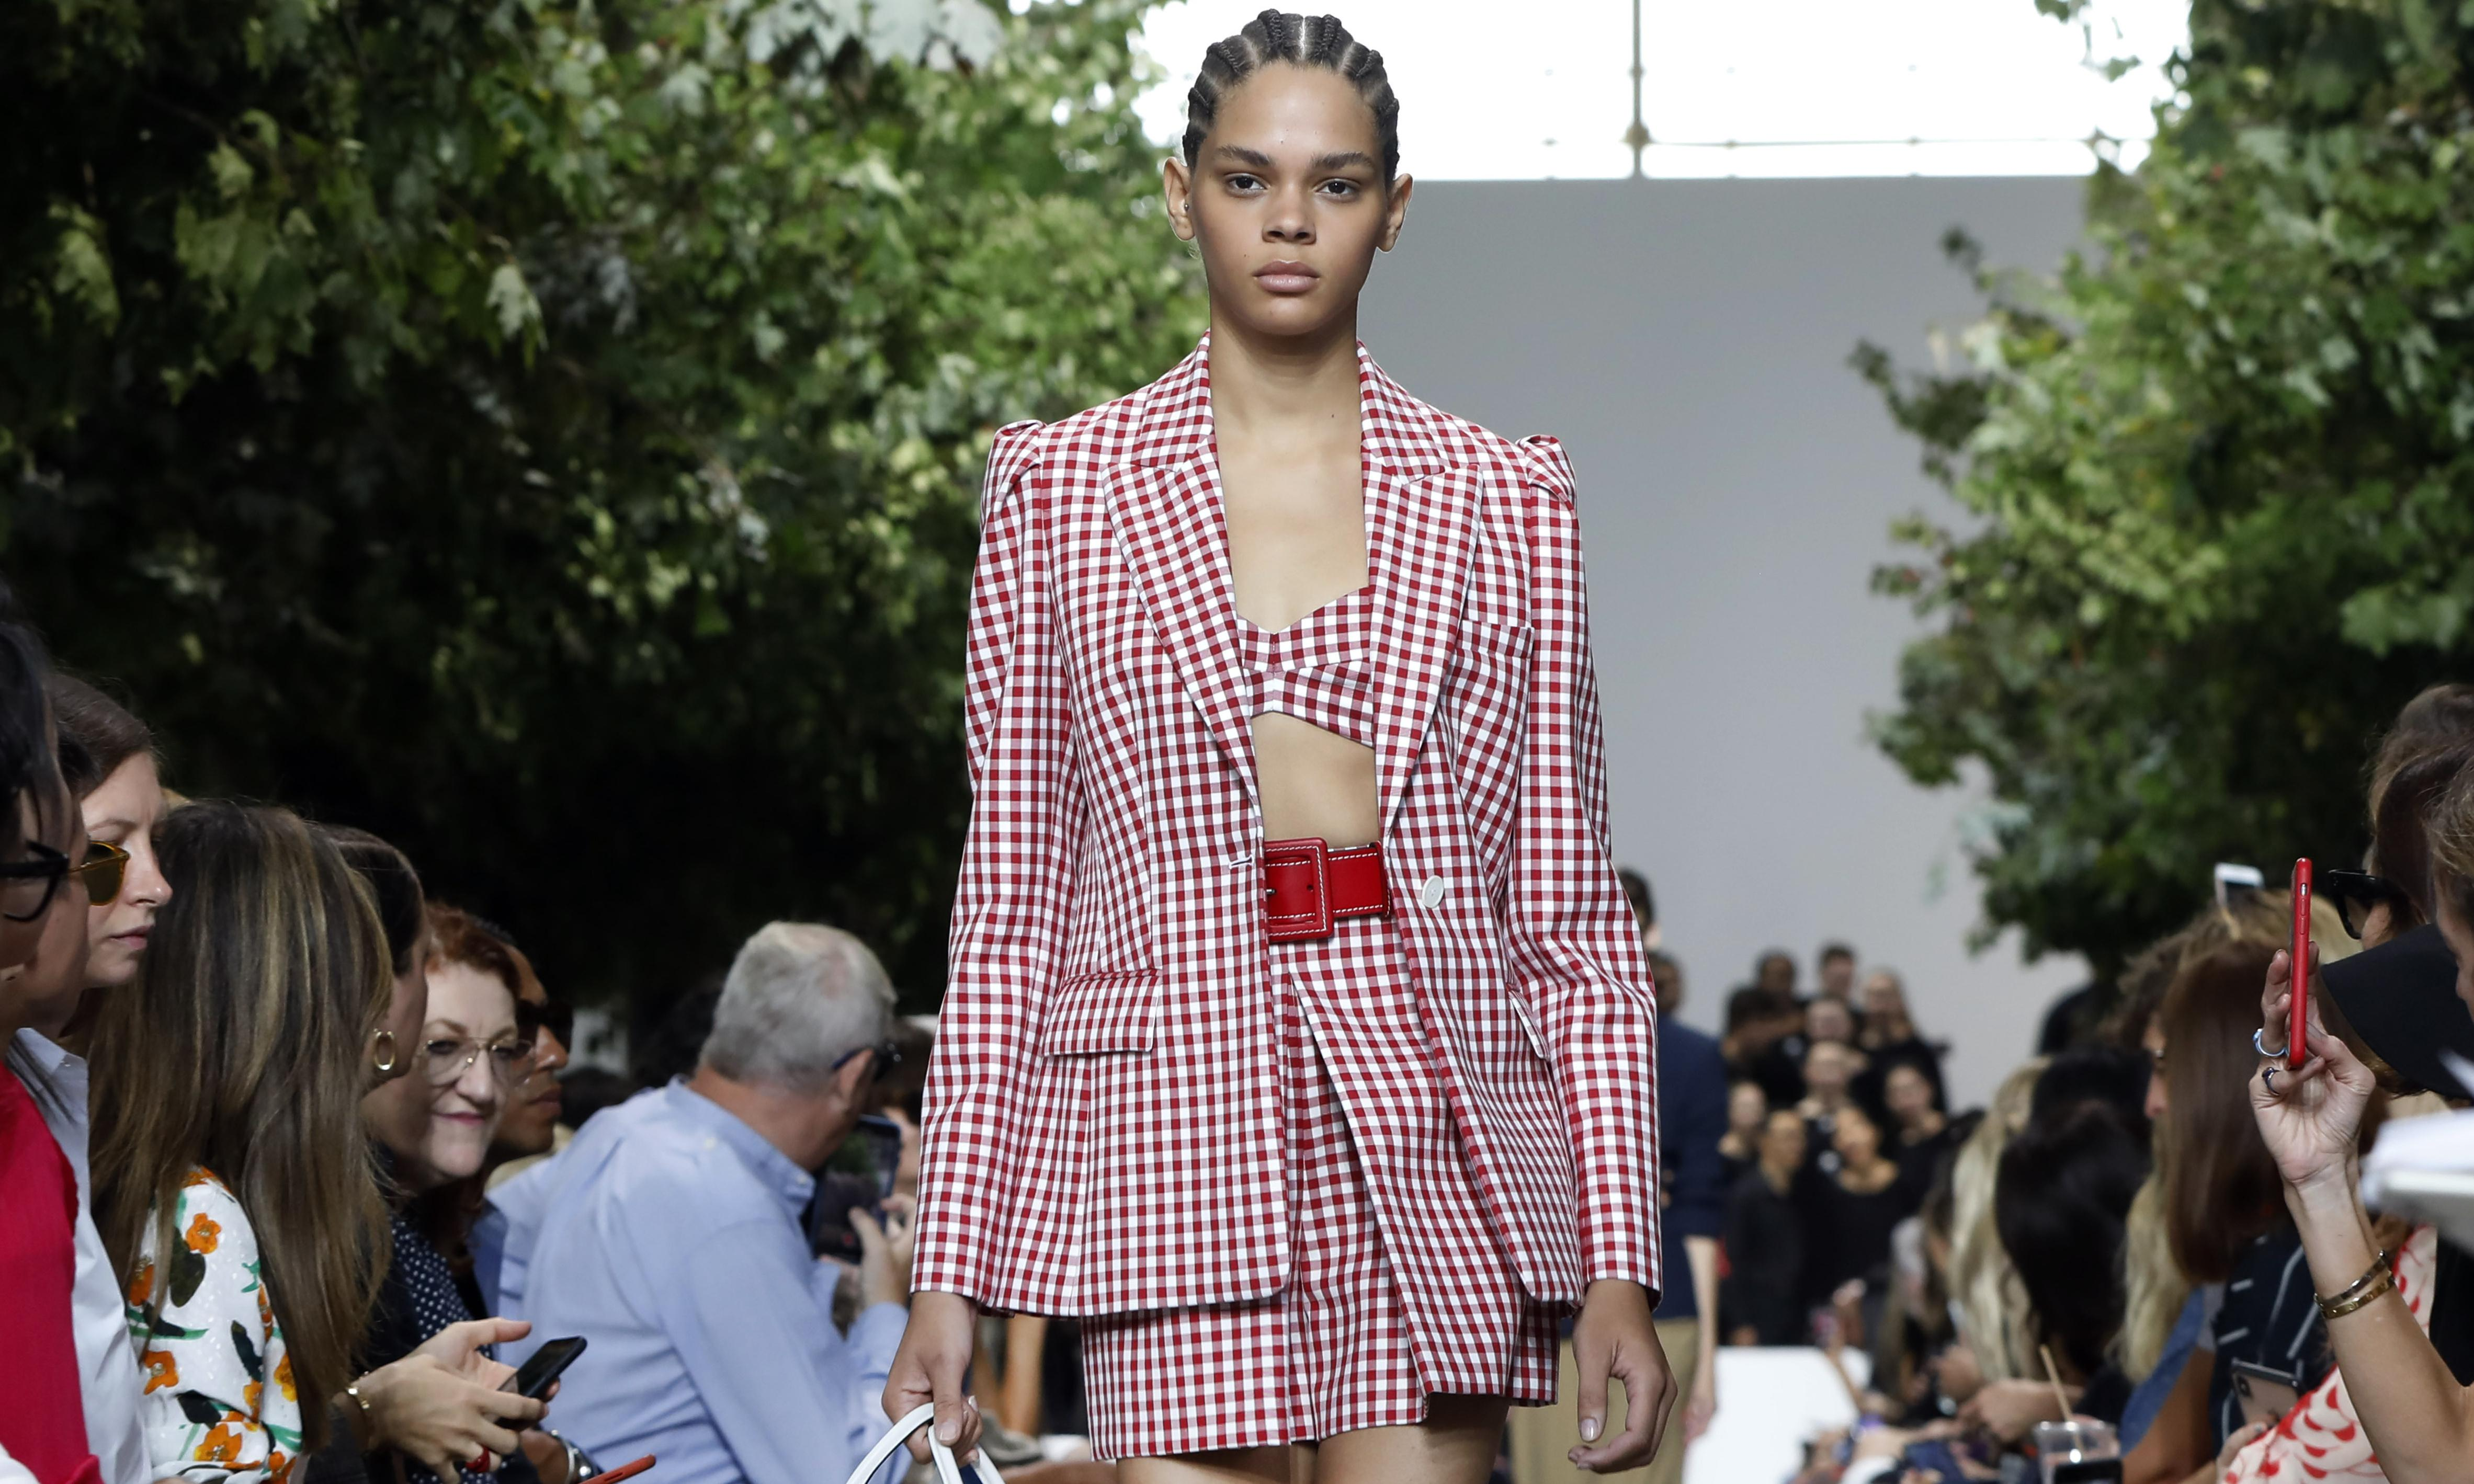 Michael Kors channels American dream in anthemic collection